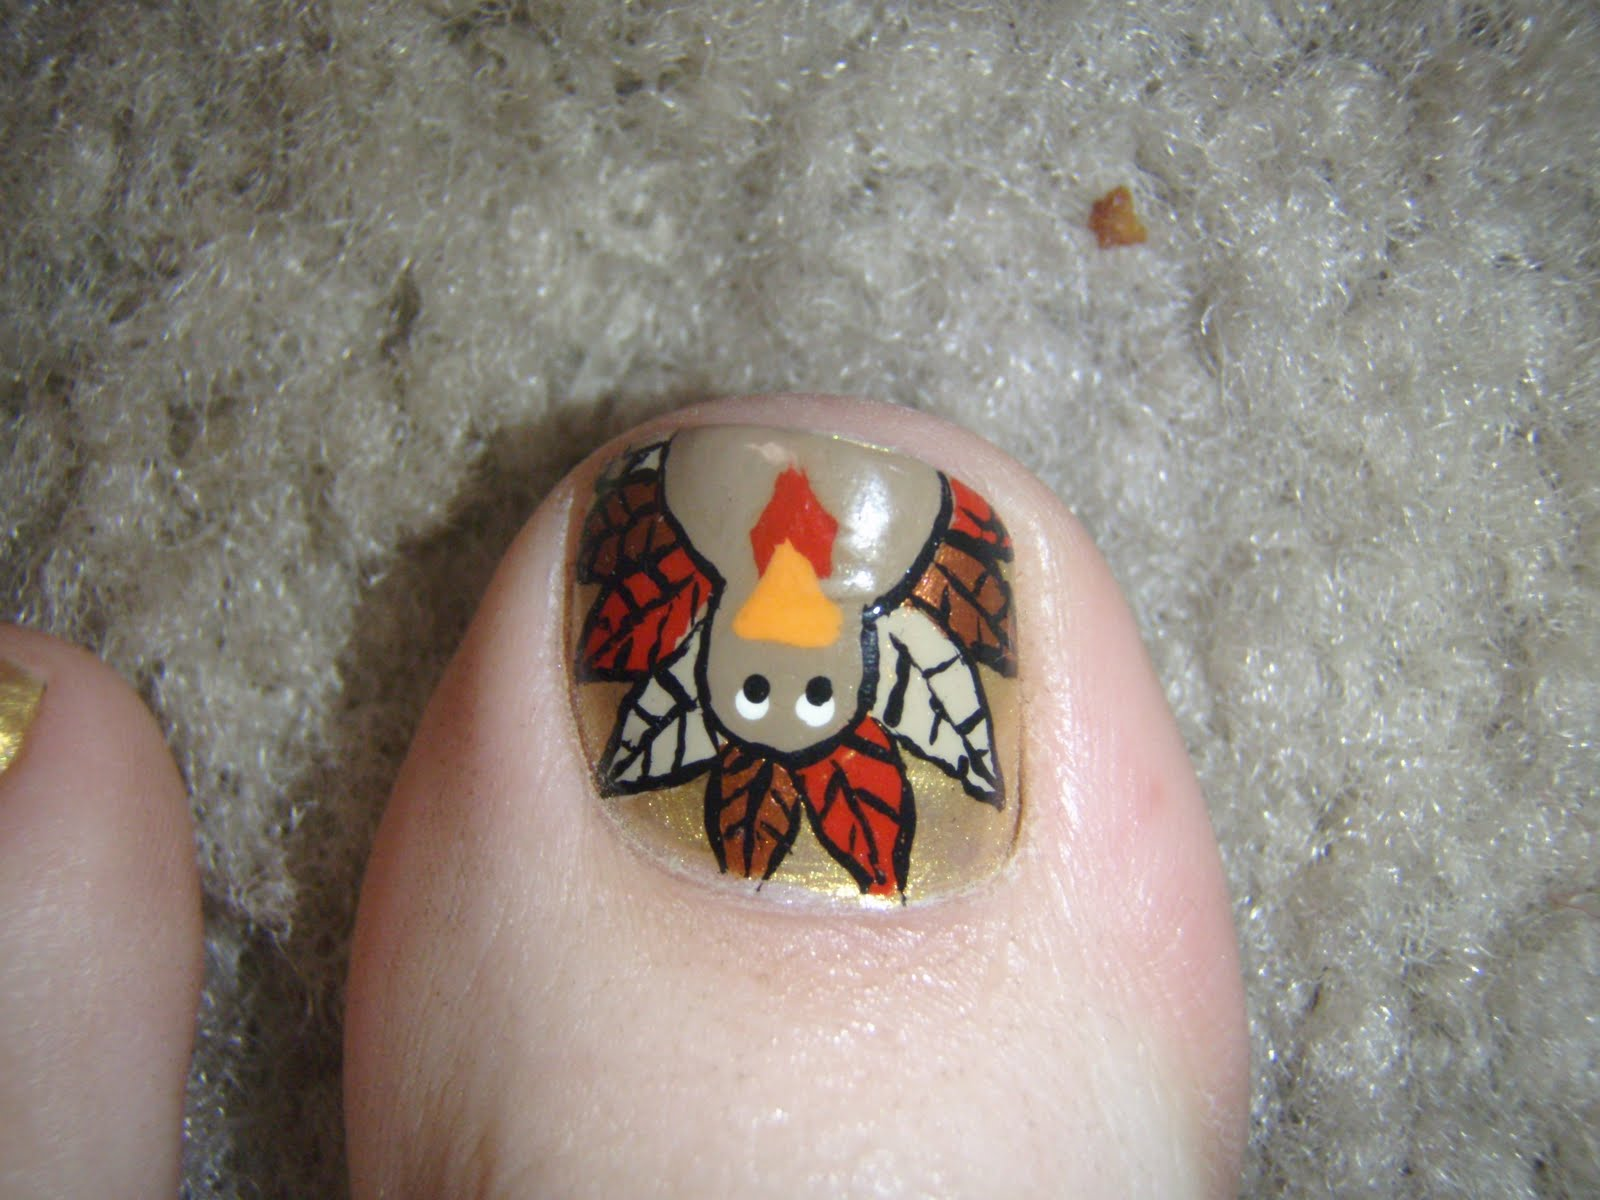 Toe nail designs for thanksgiving thanksgiving nail art designs gallery for gt thanksgiving toe nail designs view images prinsesfo Choice Image